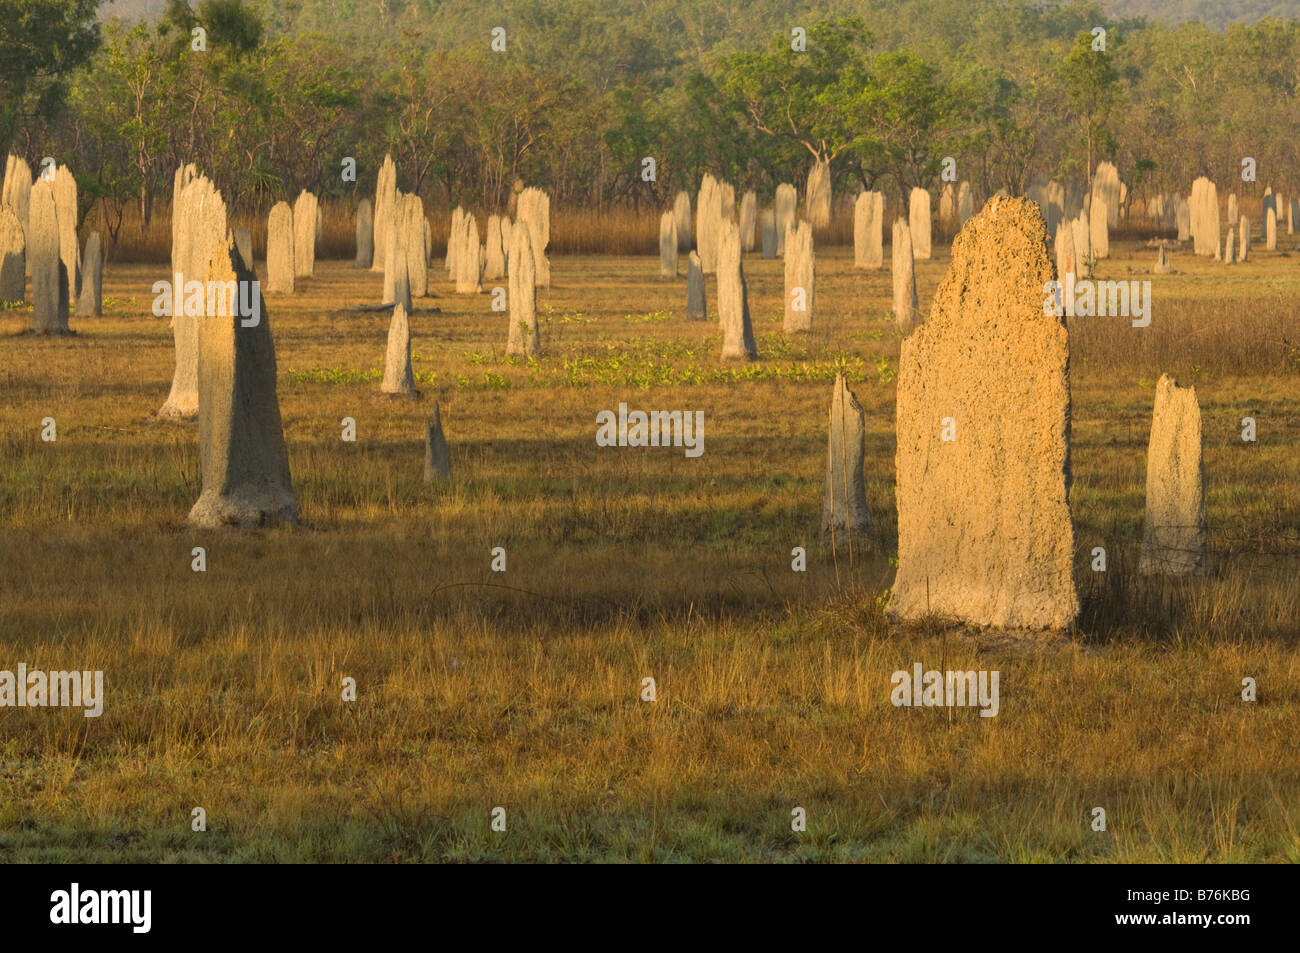 Magnetic termite (Amitermes meridionalis & A. laurensis) mounds North of Lichfield N.P. Northern Territory Australia - Stock Image